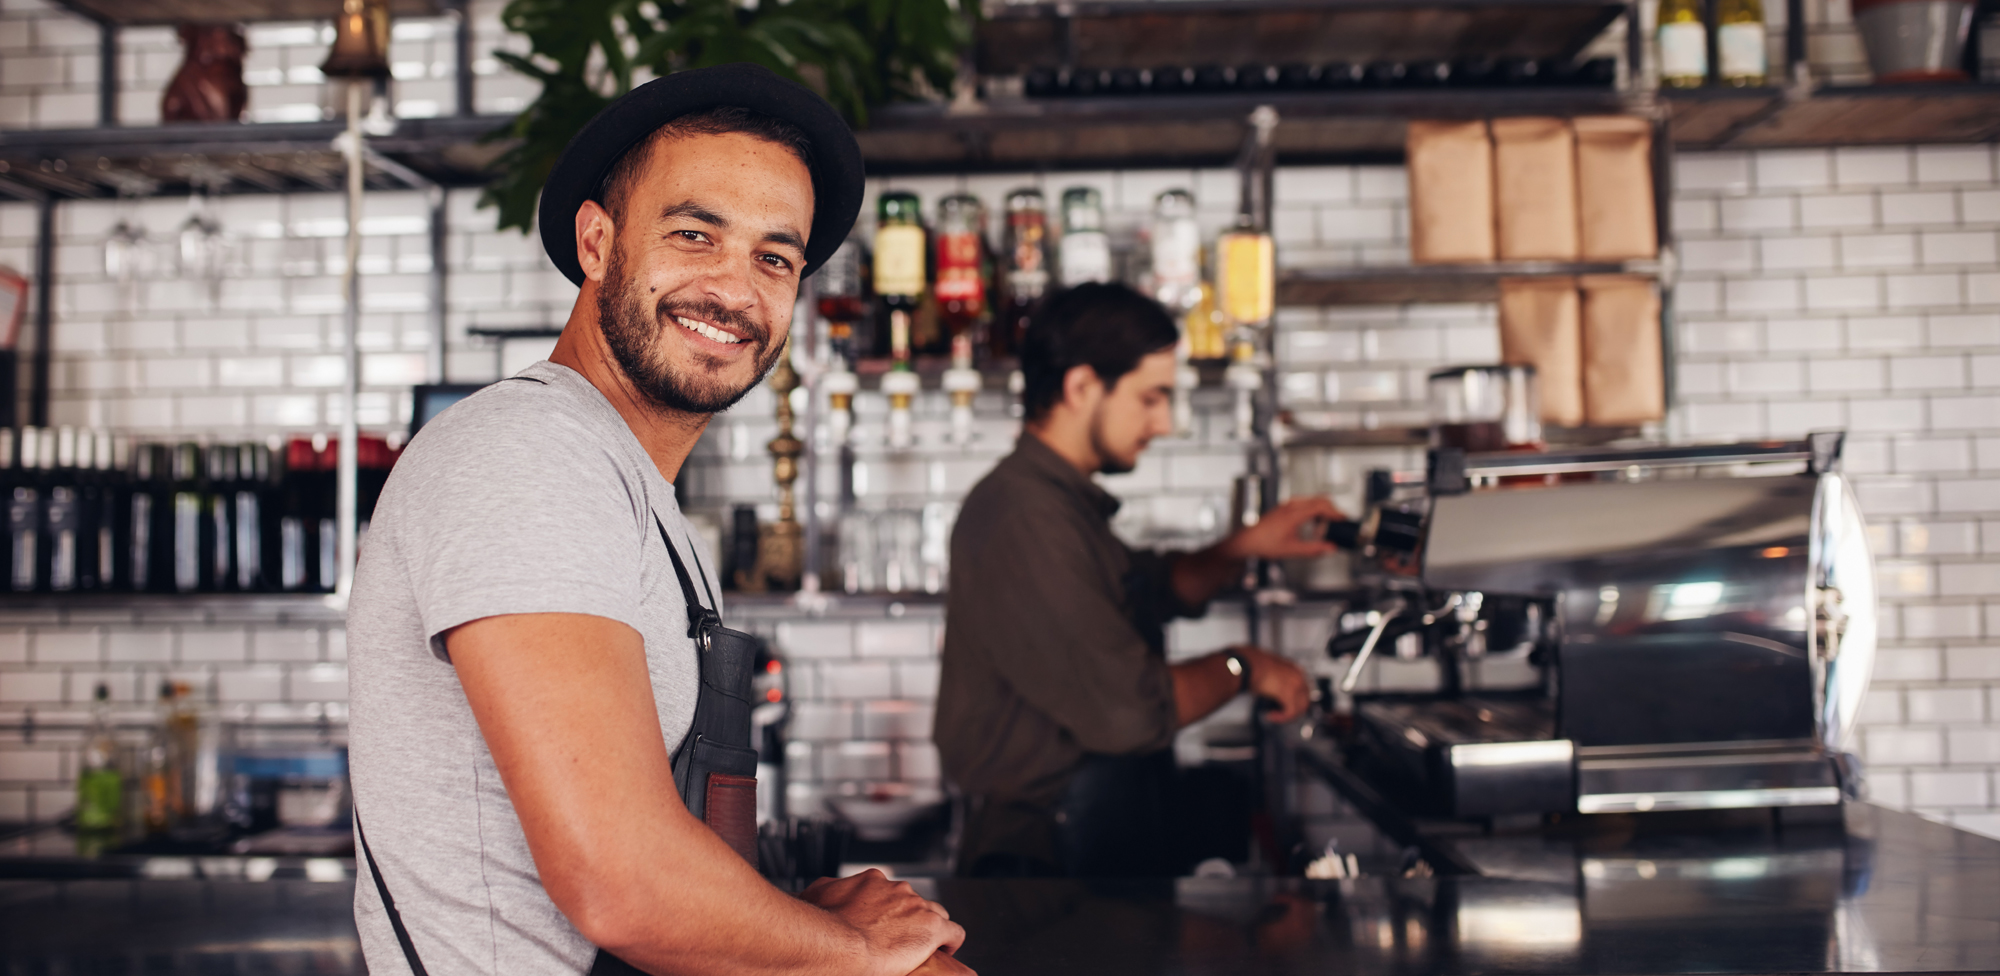 male barista at work and smiling at the camera